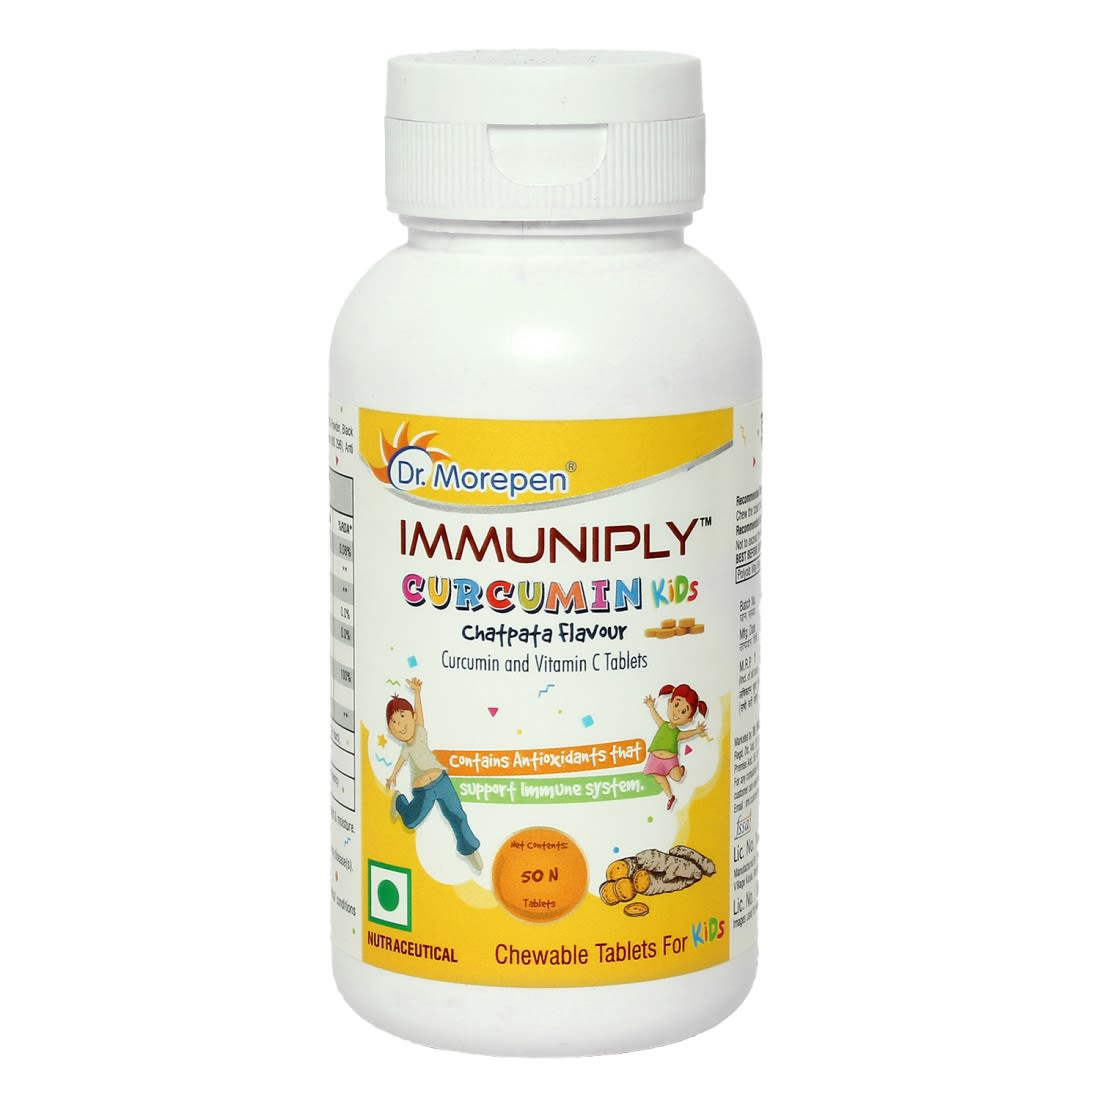 Dr. Morepen Immuniply Turmeric Curcumin Tablets For Kids - 50 Chewable Tablets